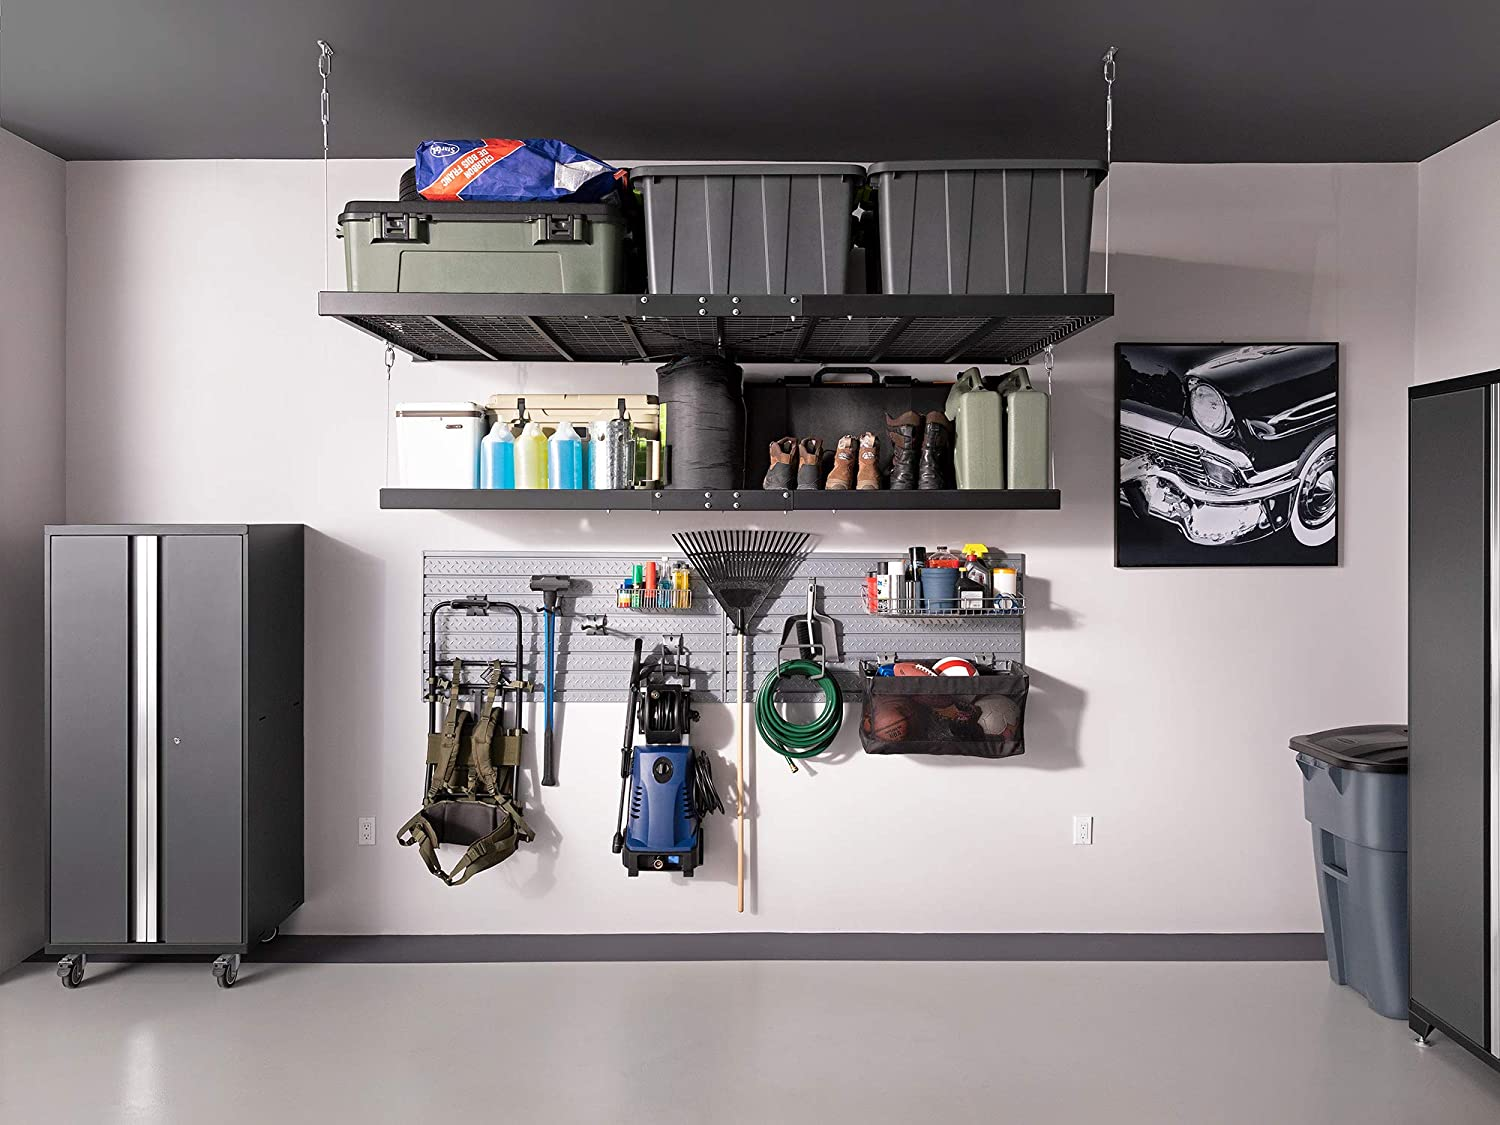 NewAge Products Pro Series Black 2 ft. x 8 ft. Wall Mounted Steel Shelf, Garage Overheads